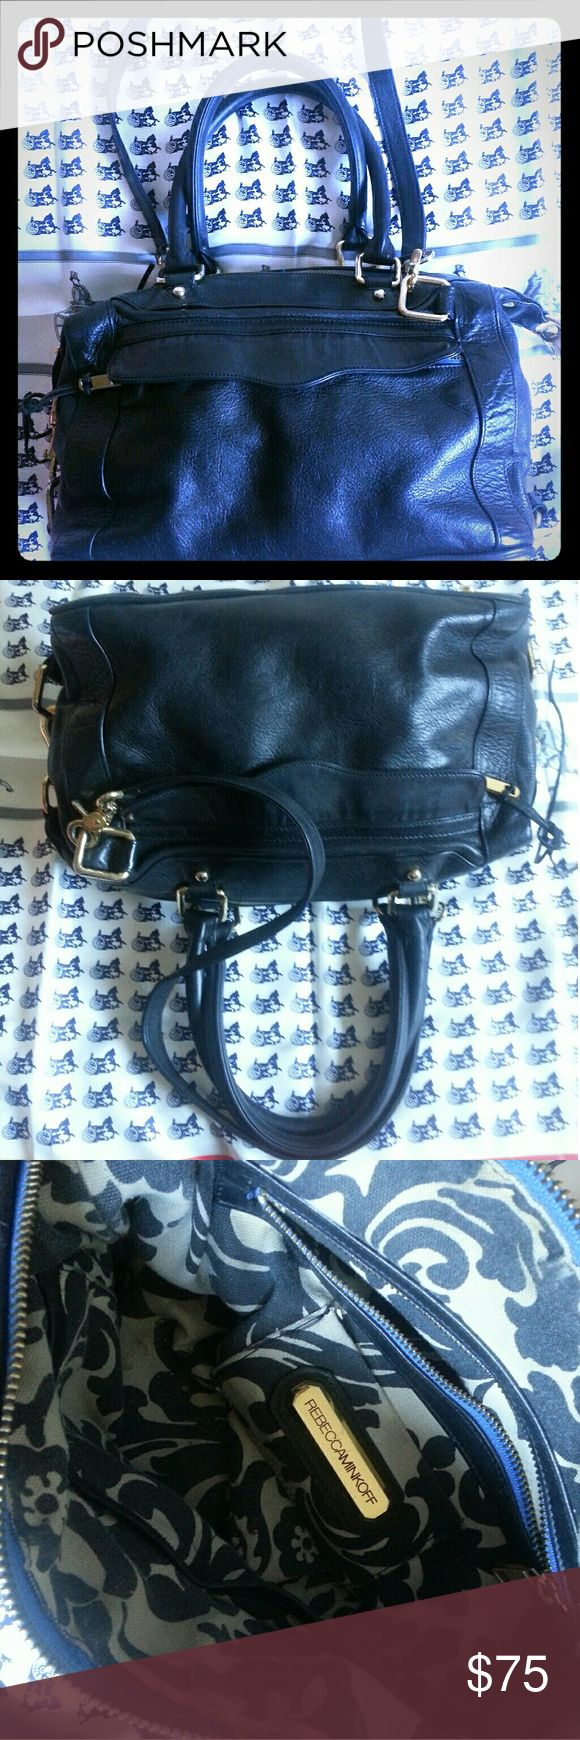 Black leather purse Satchel shoulderbag Really nice bag.  Carry as satchel or on shoulder.  Doctor bag.  Has normal wear on corners and throughout but nothing gross or drastic.  Just normal wear from use.  Very clean. Rebecca Minkoff Bags